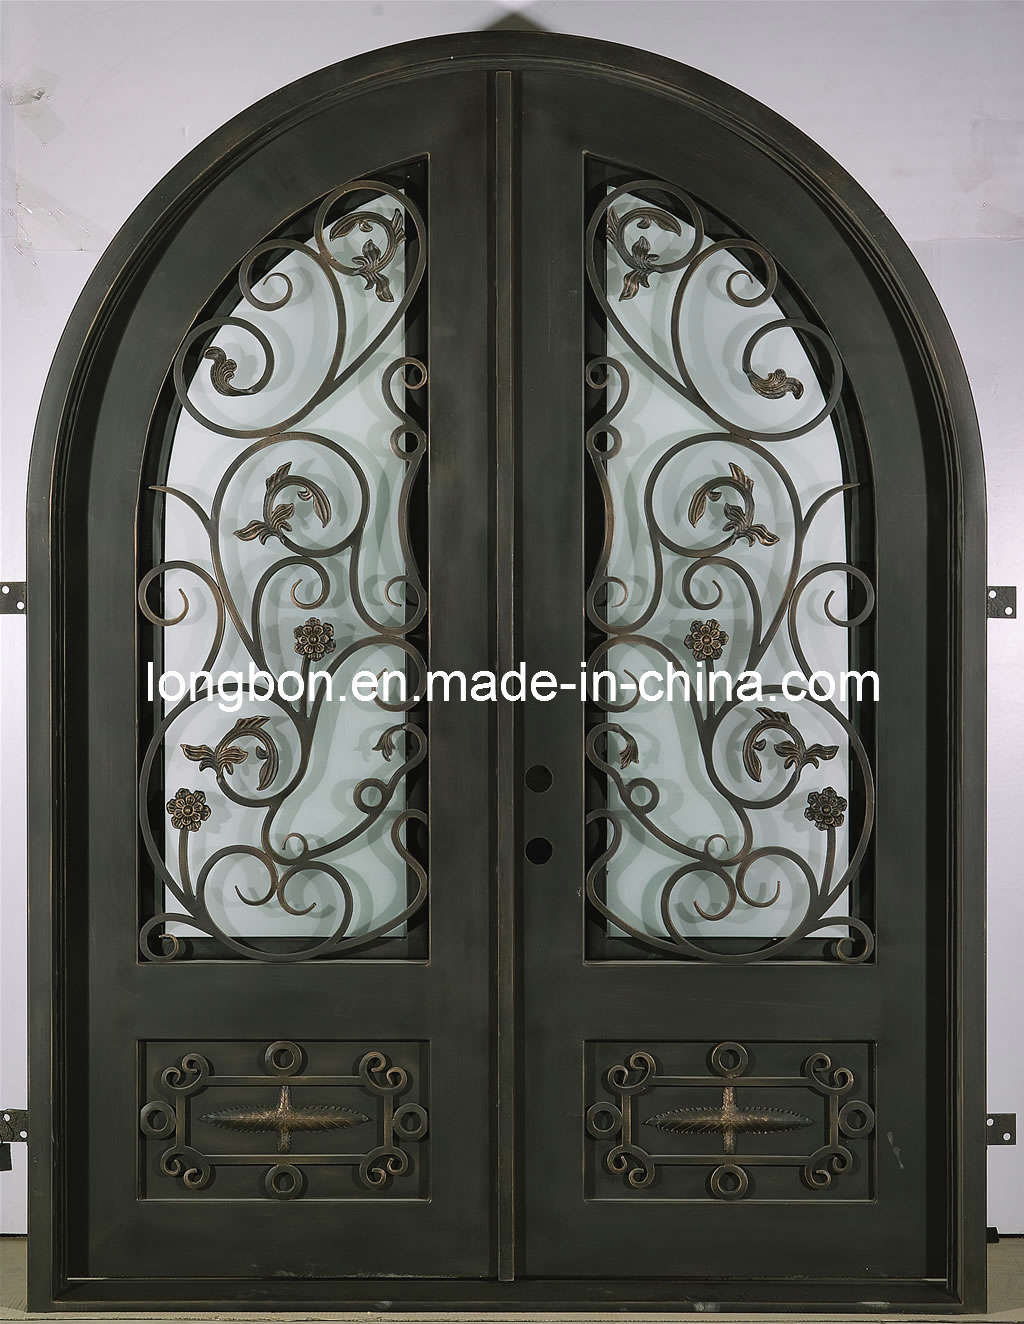 1324 #595145 Security Doors: Wrought Iron Security Door pic Wood Wrought Iron Doors 43111024